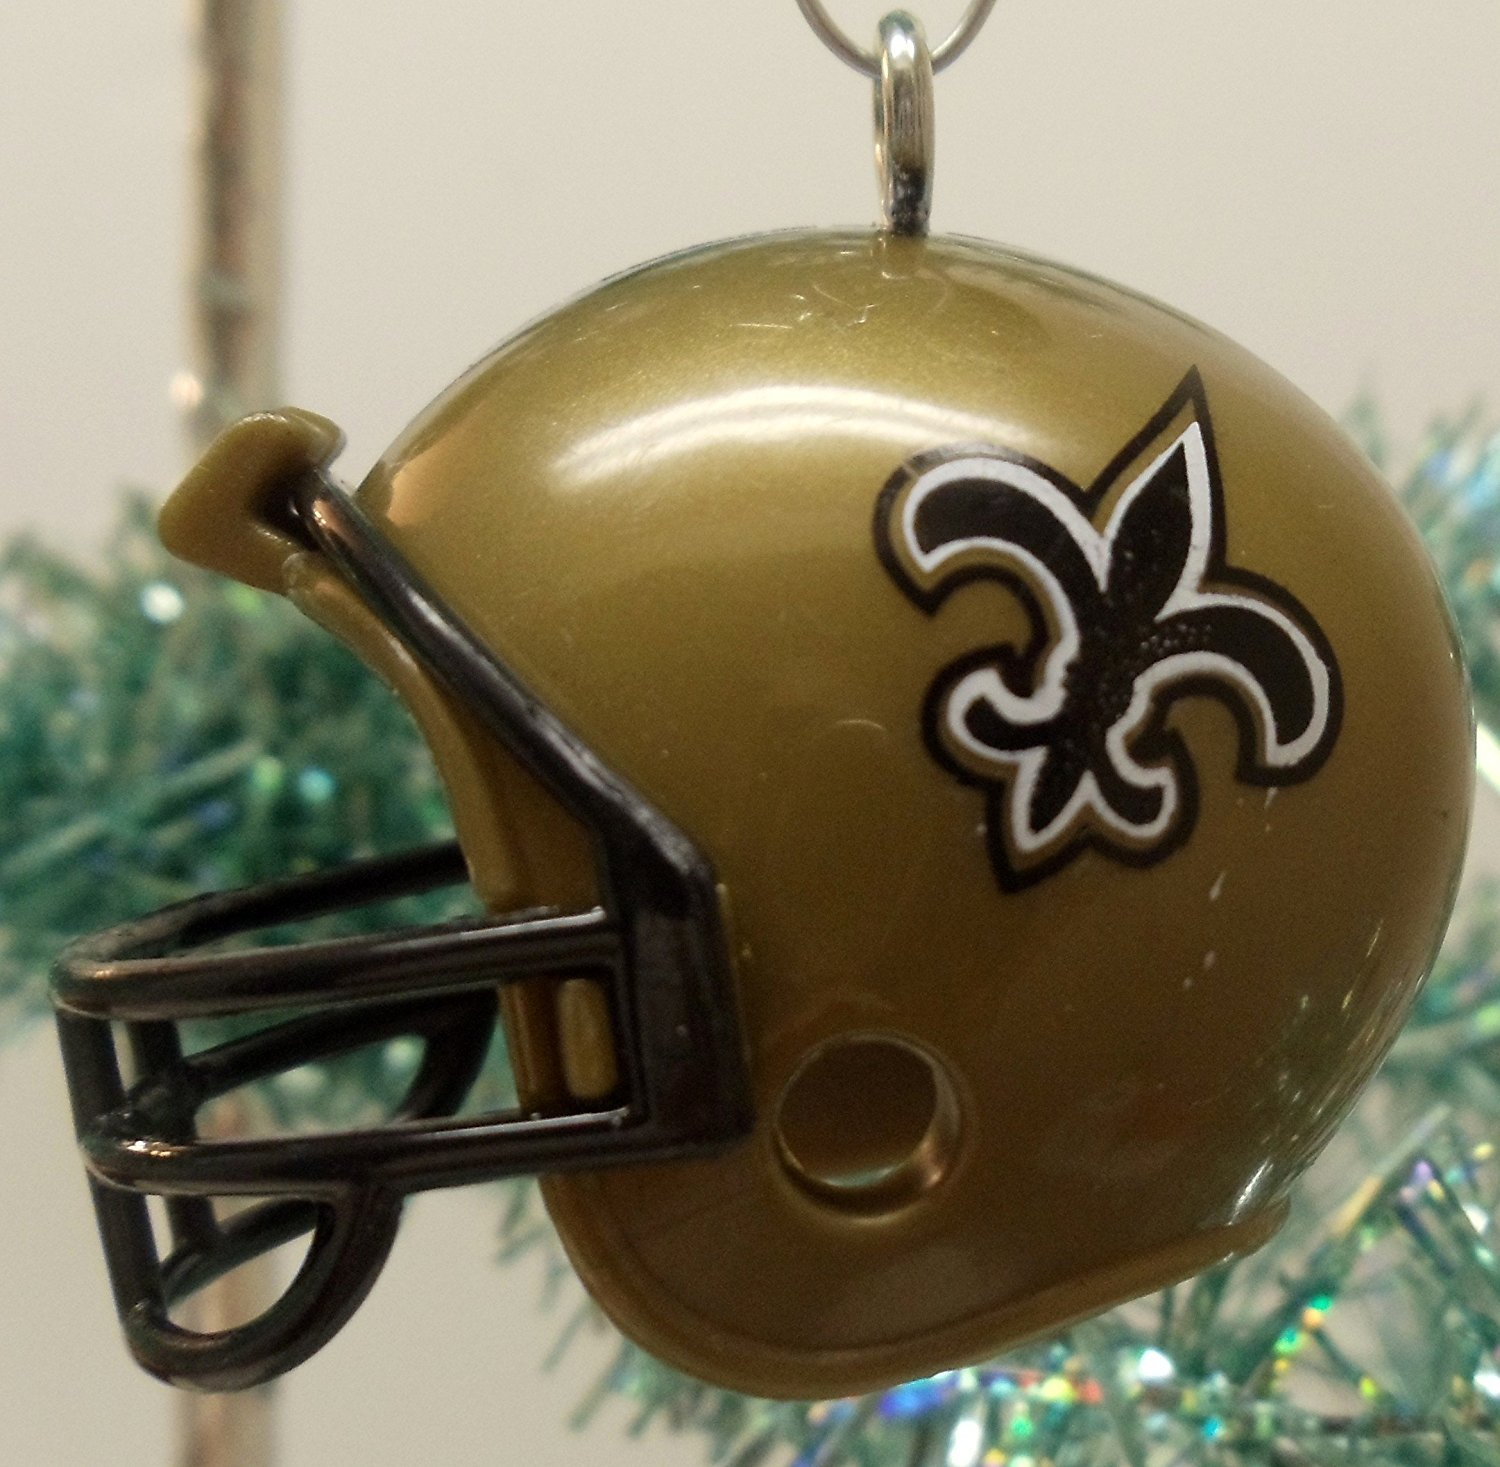 New Orleans Saints Set of 12 Holiday Christmas Tree Ornaments Featuring Saints Team Ornaments Ranging from 1.5 to 2 Tall